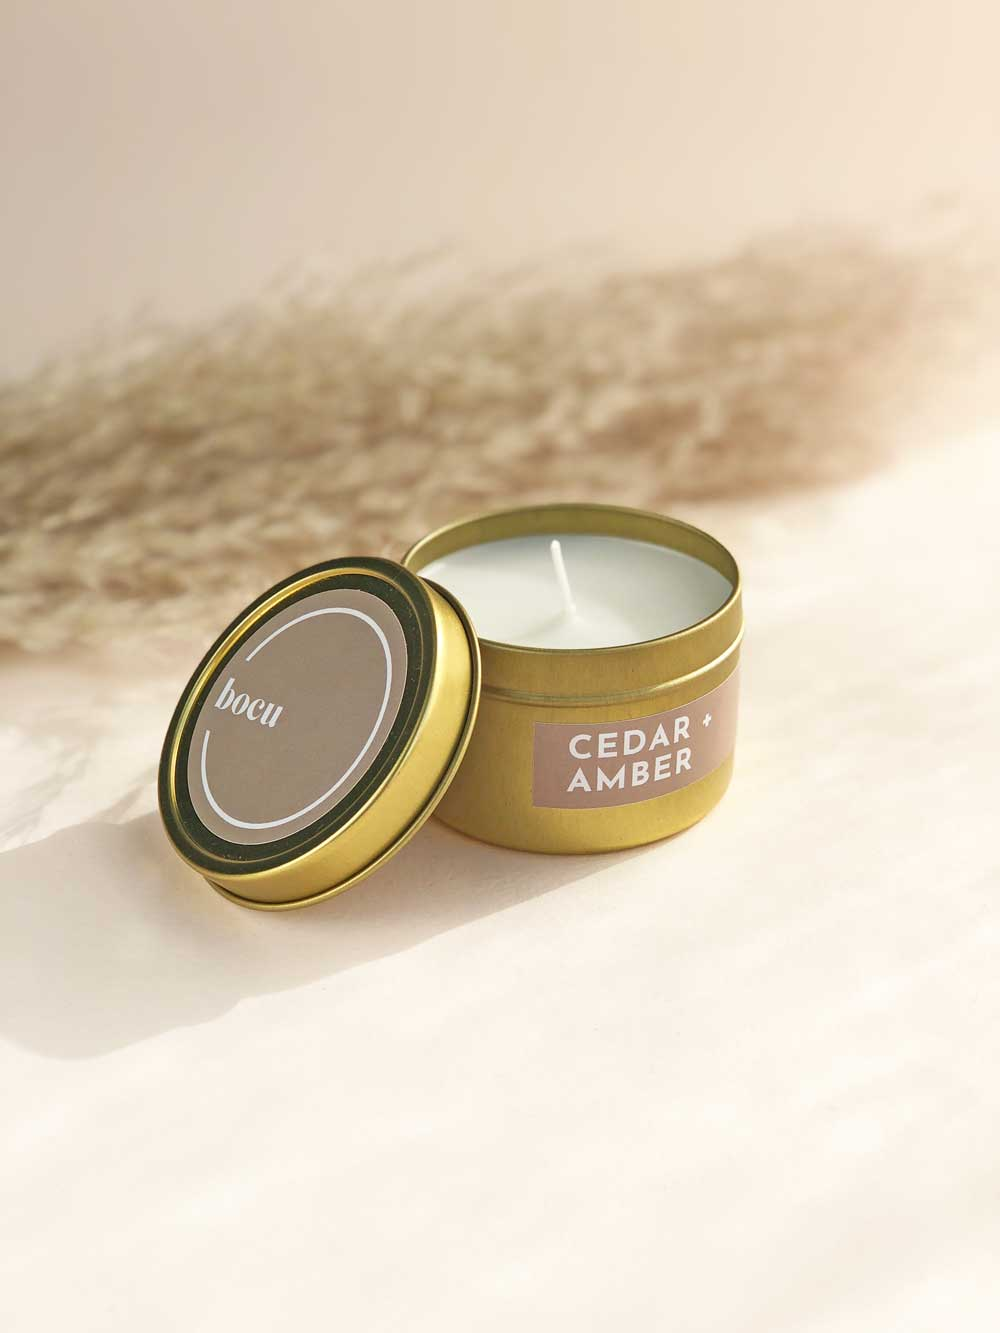 Cedar + Amber Travel Candle